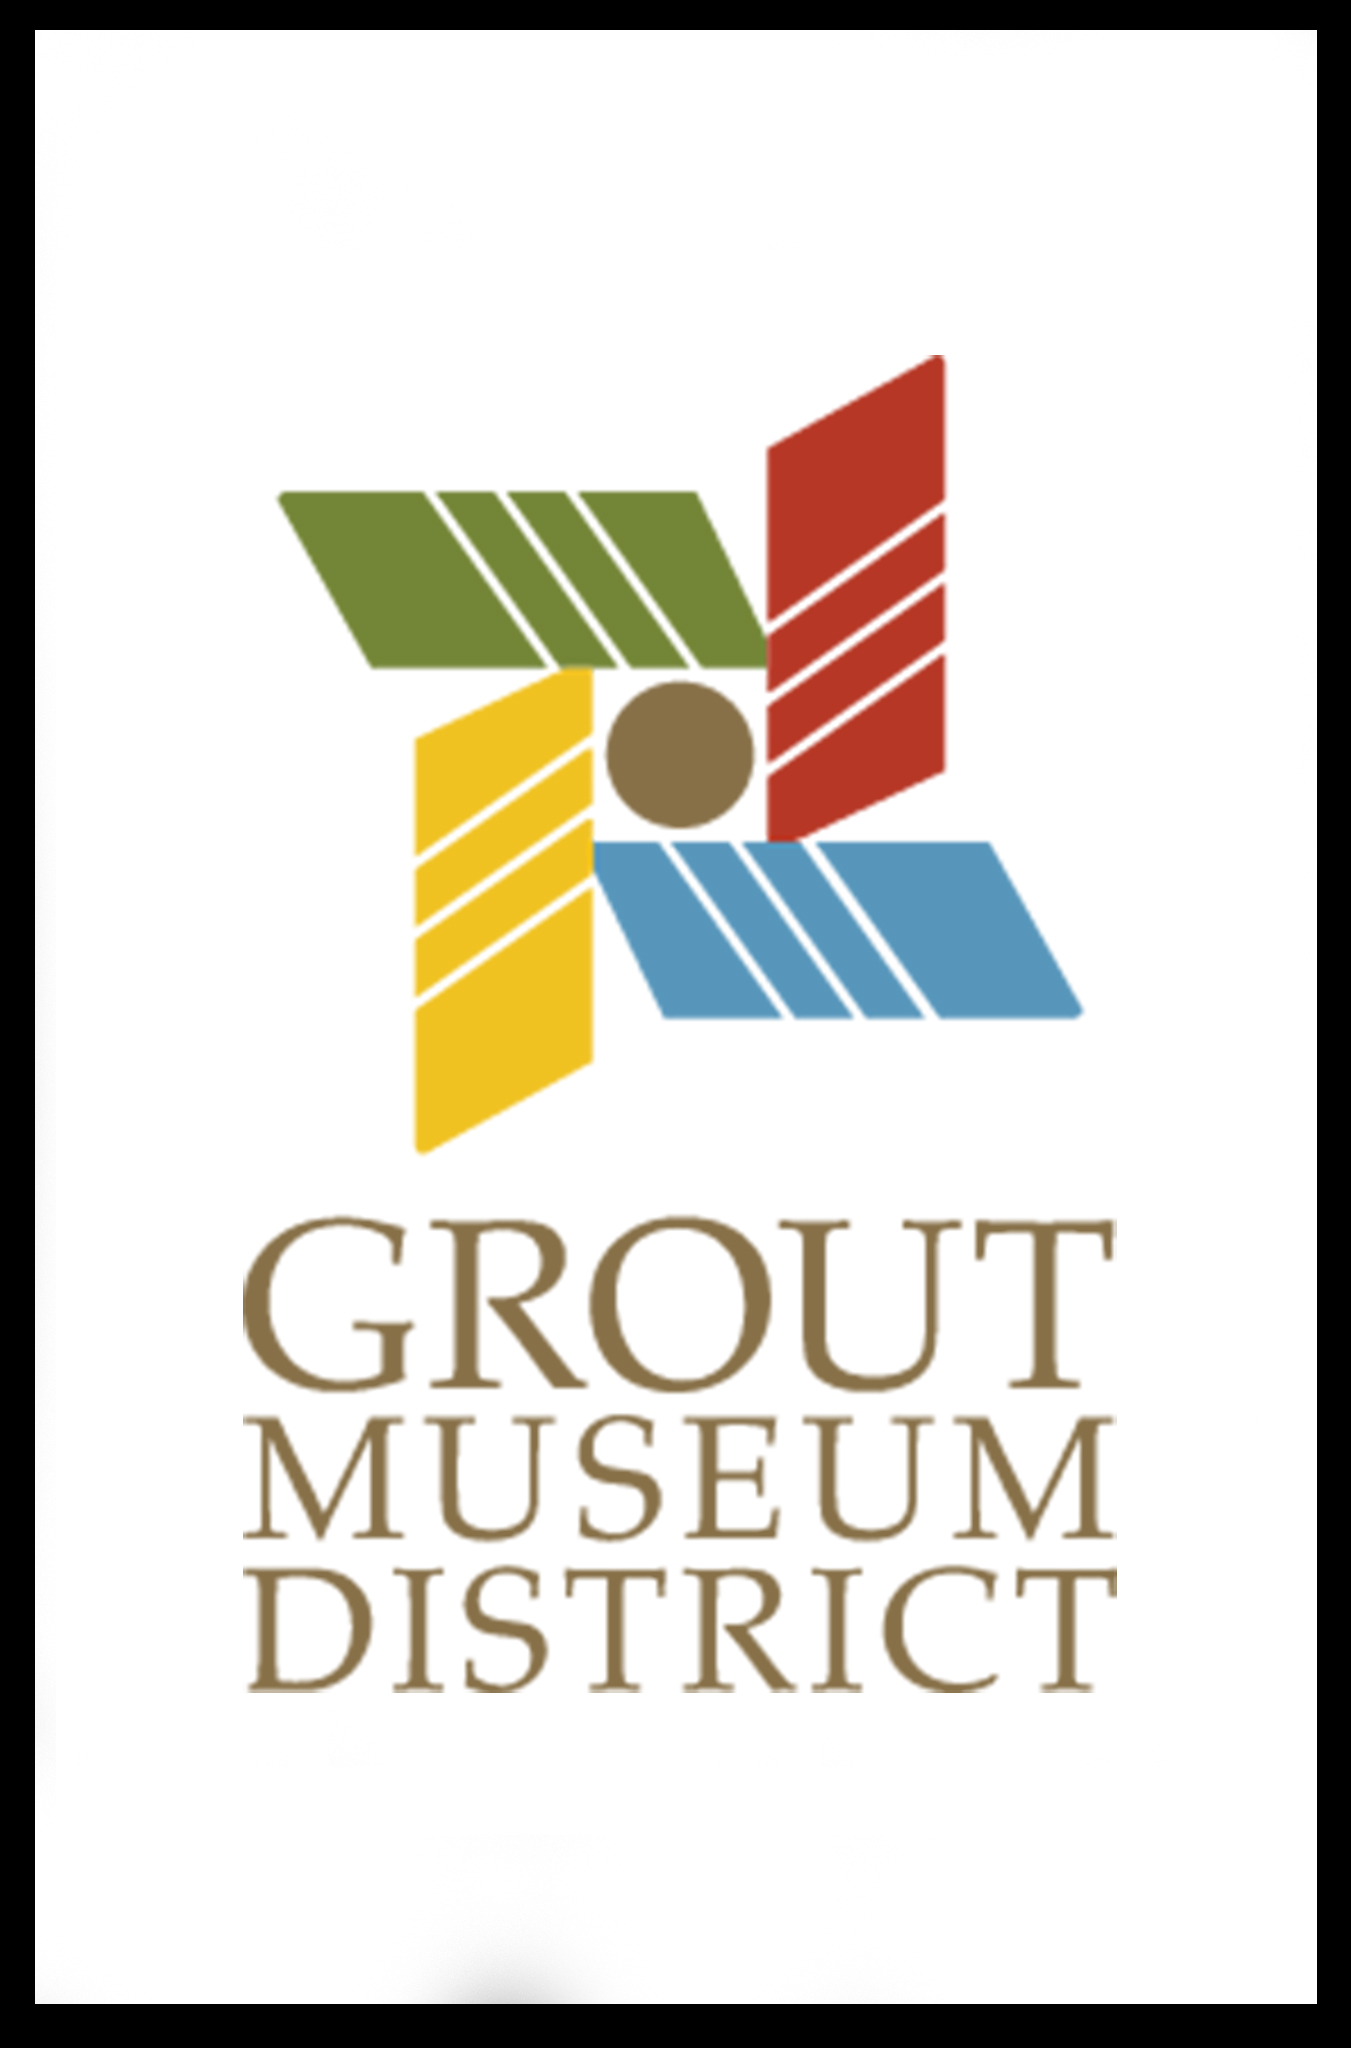 Grout Museum